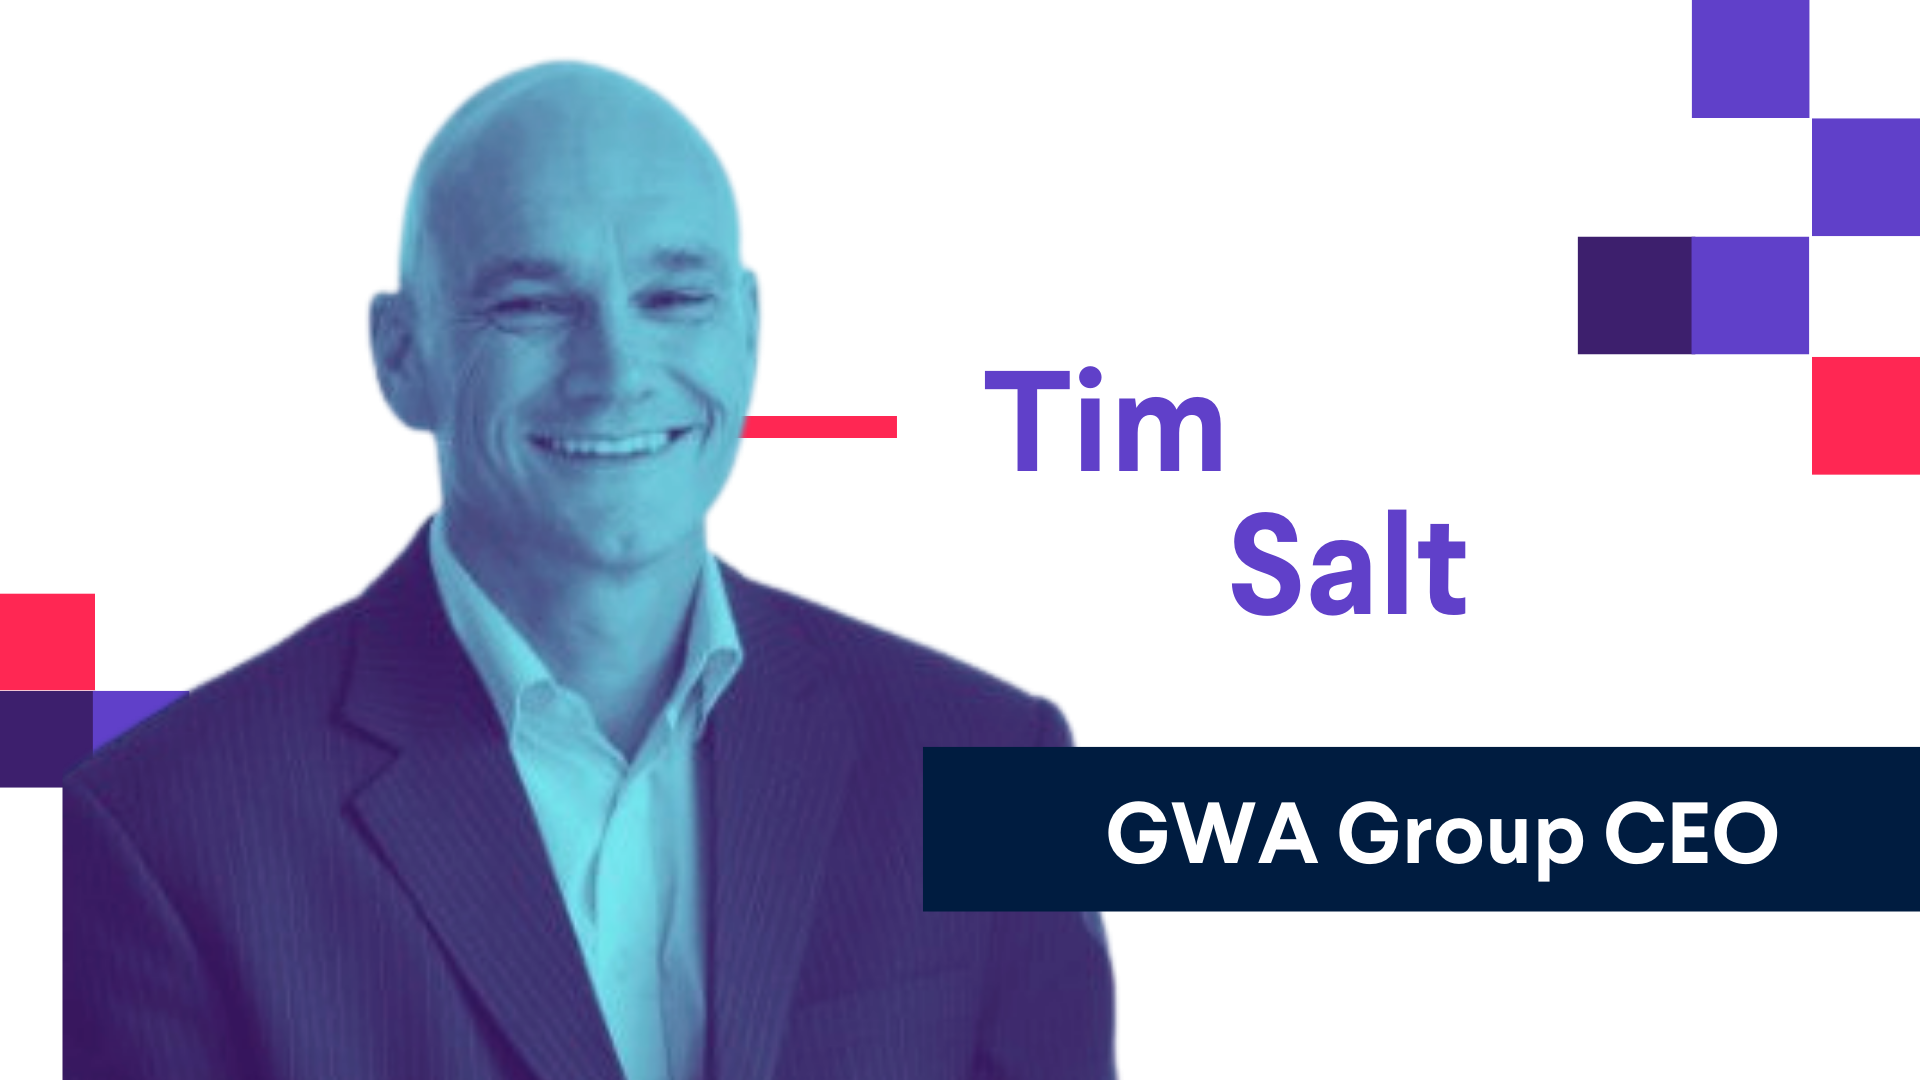 GWA Group CEO: We'll have to be more nimble in the 4th quarter